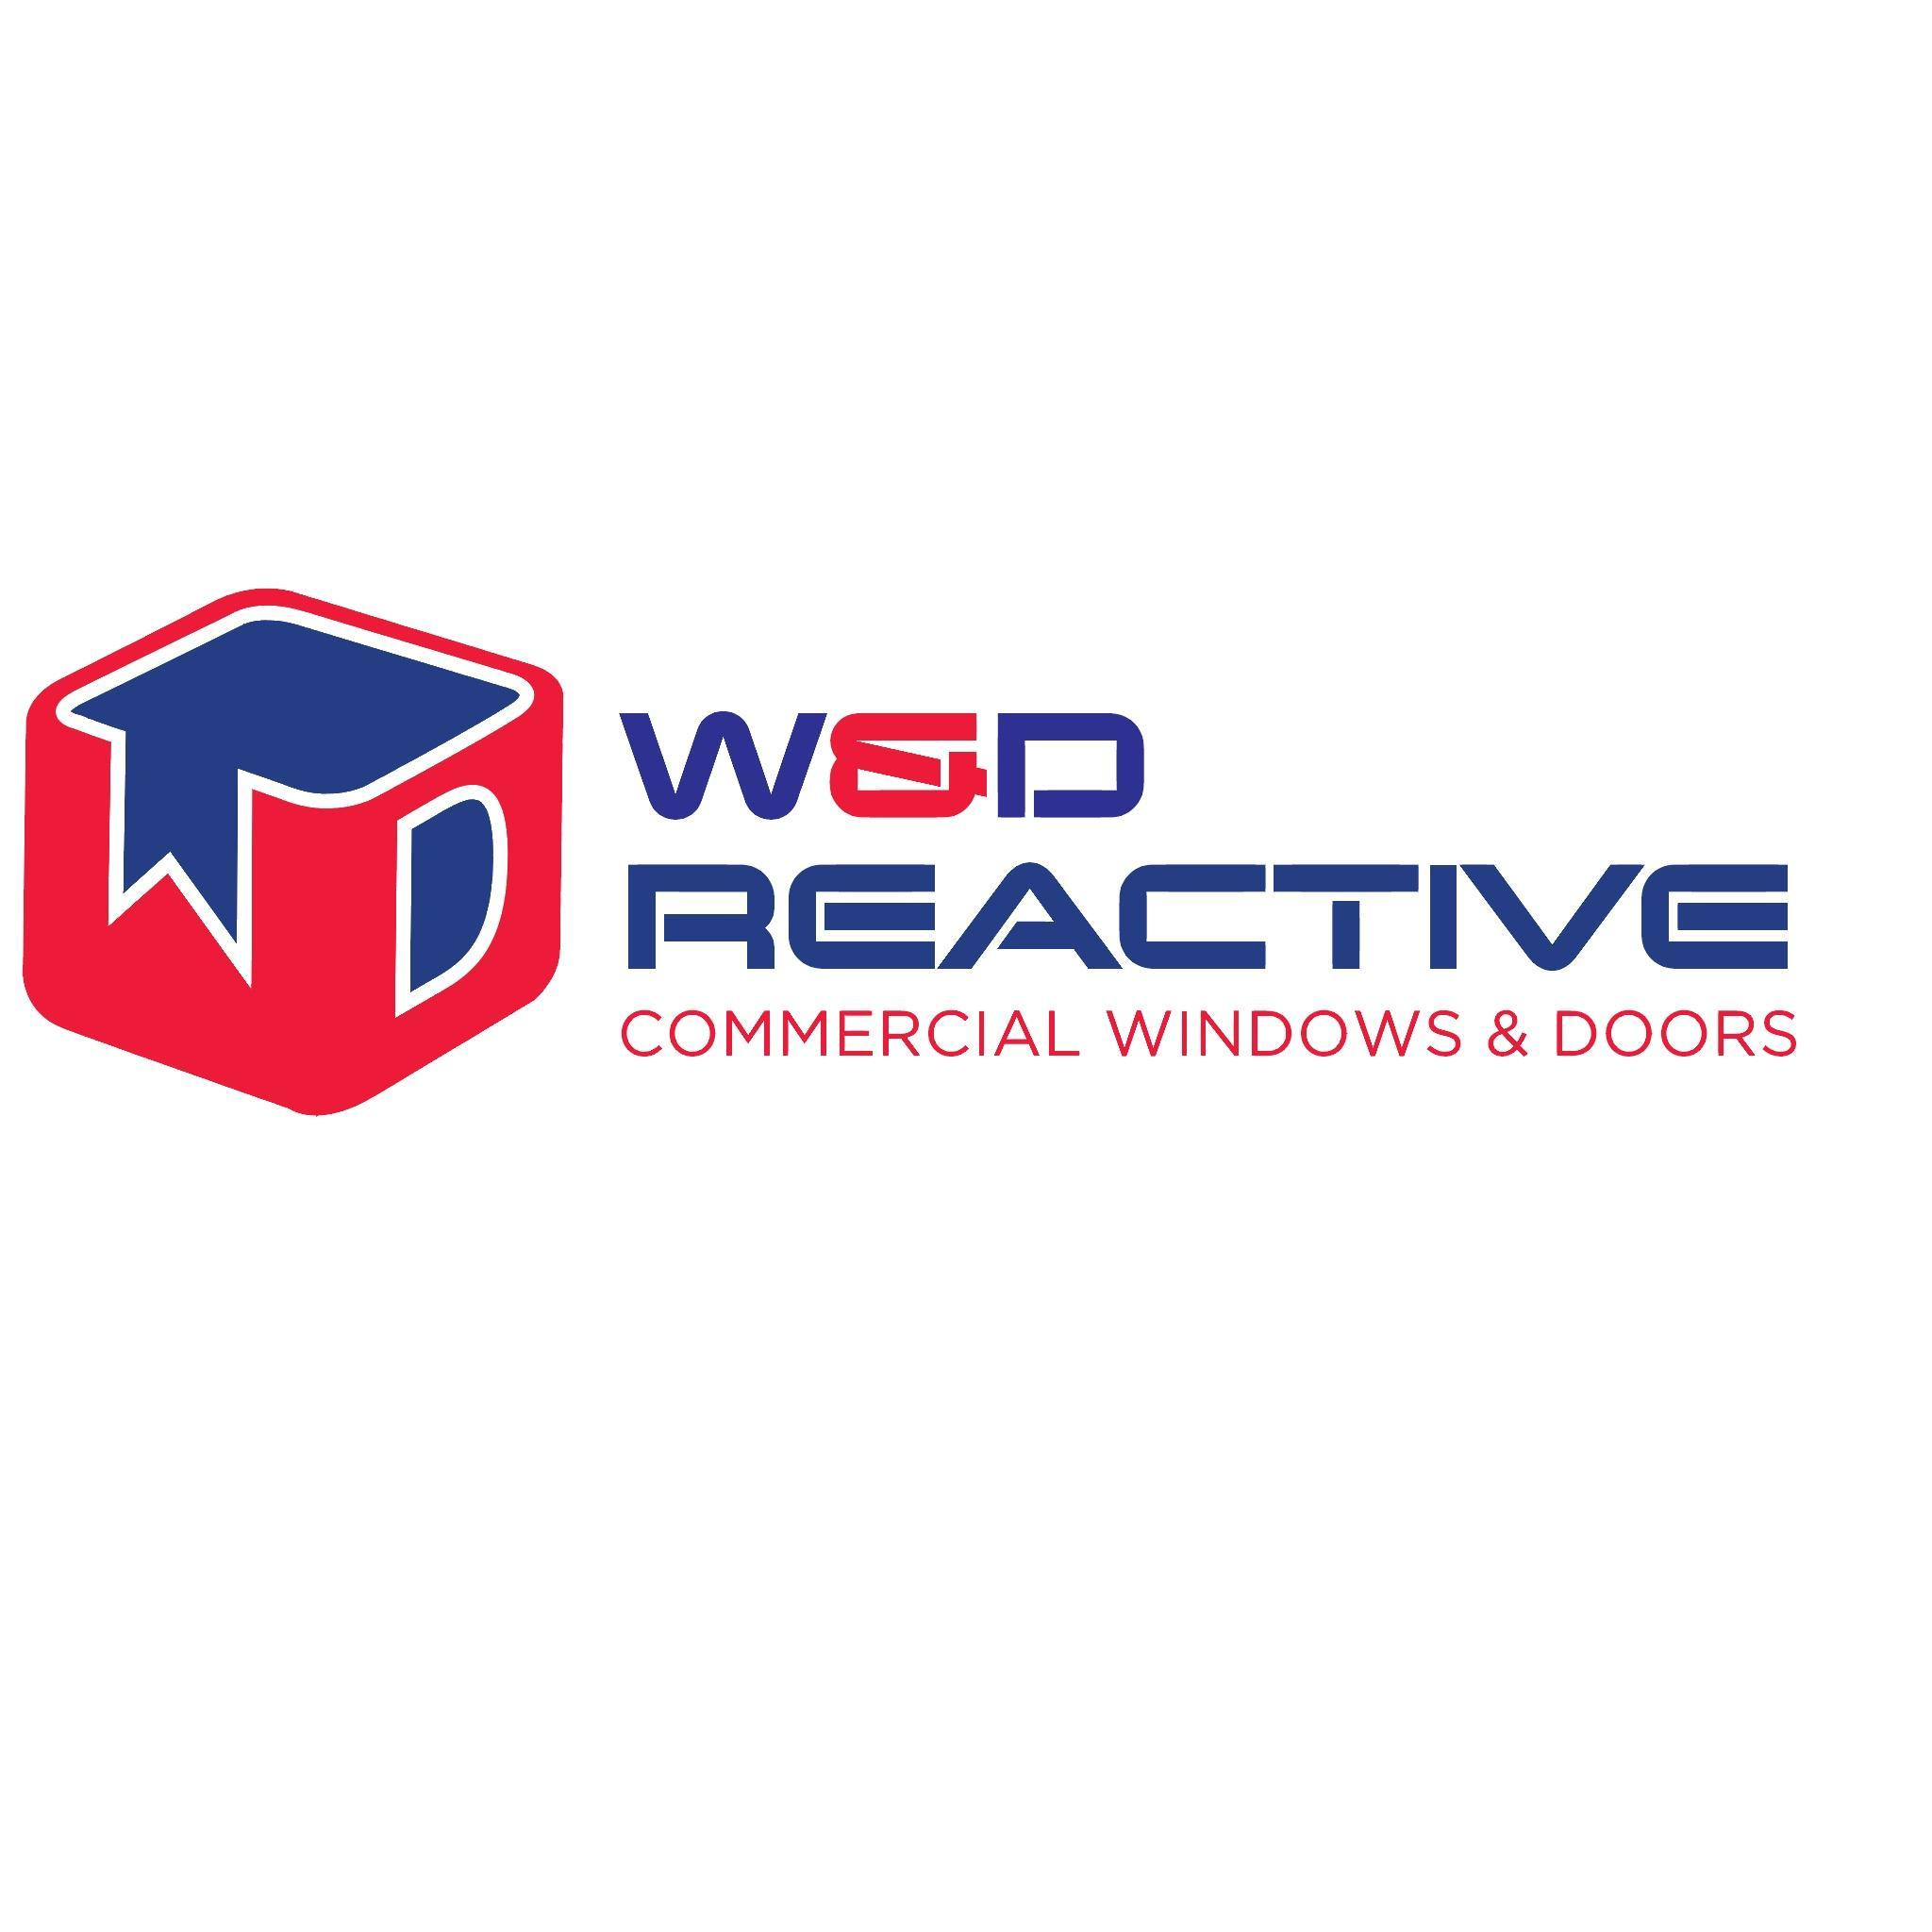 W & D Reactive Ltd - Cannock, Staffordshire WS12 2HA - 08452 309999 | ShowMeLocal.com